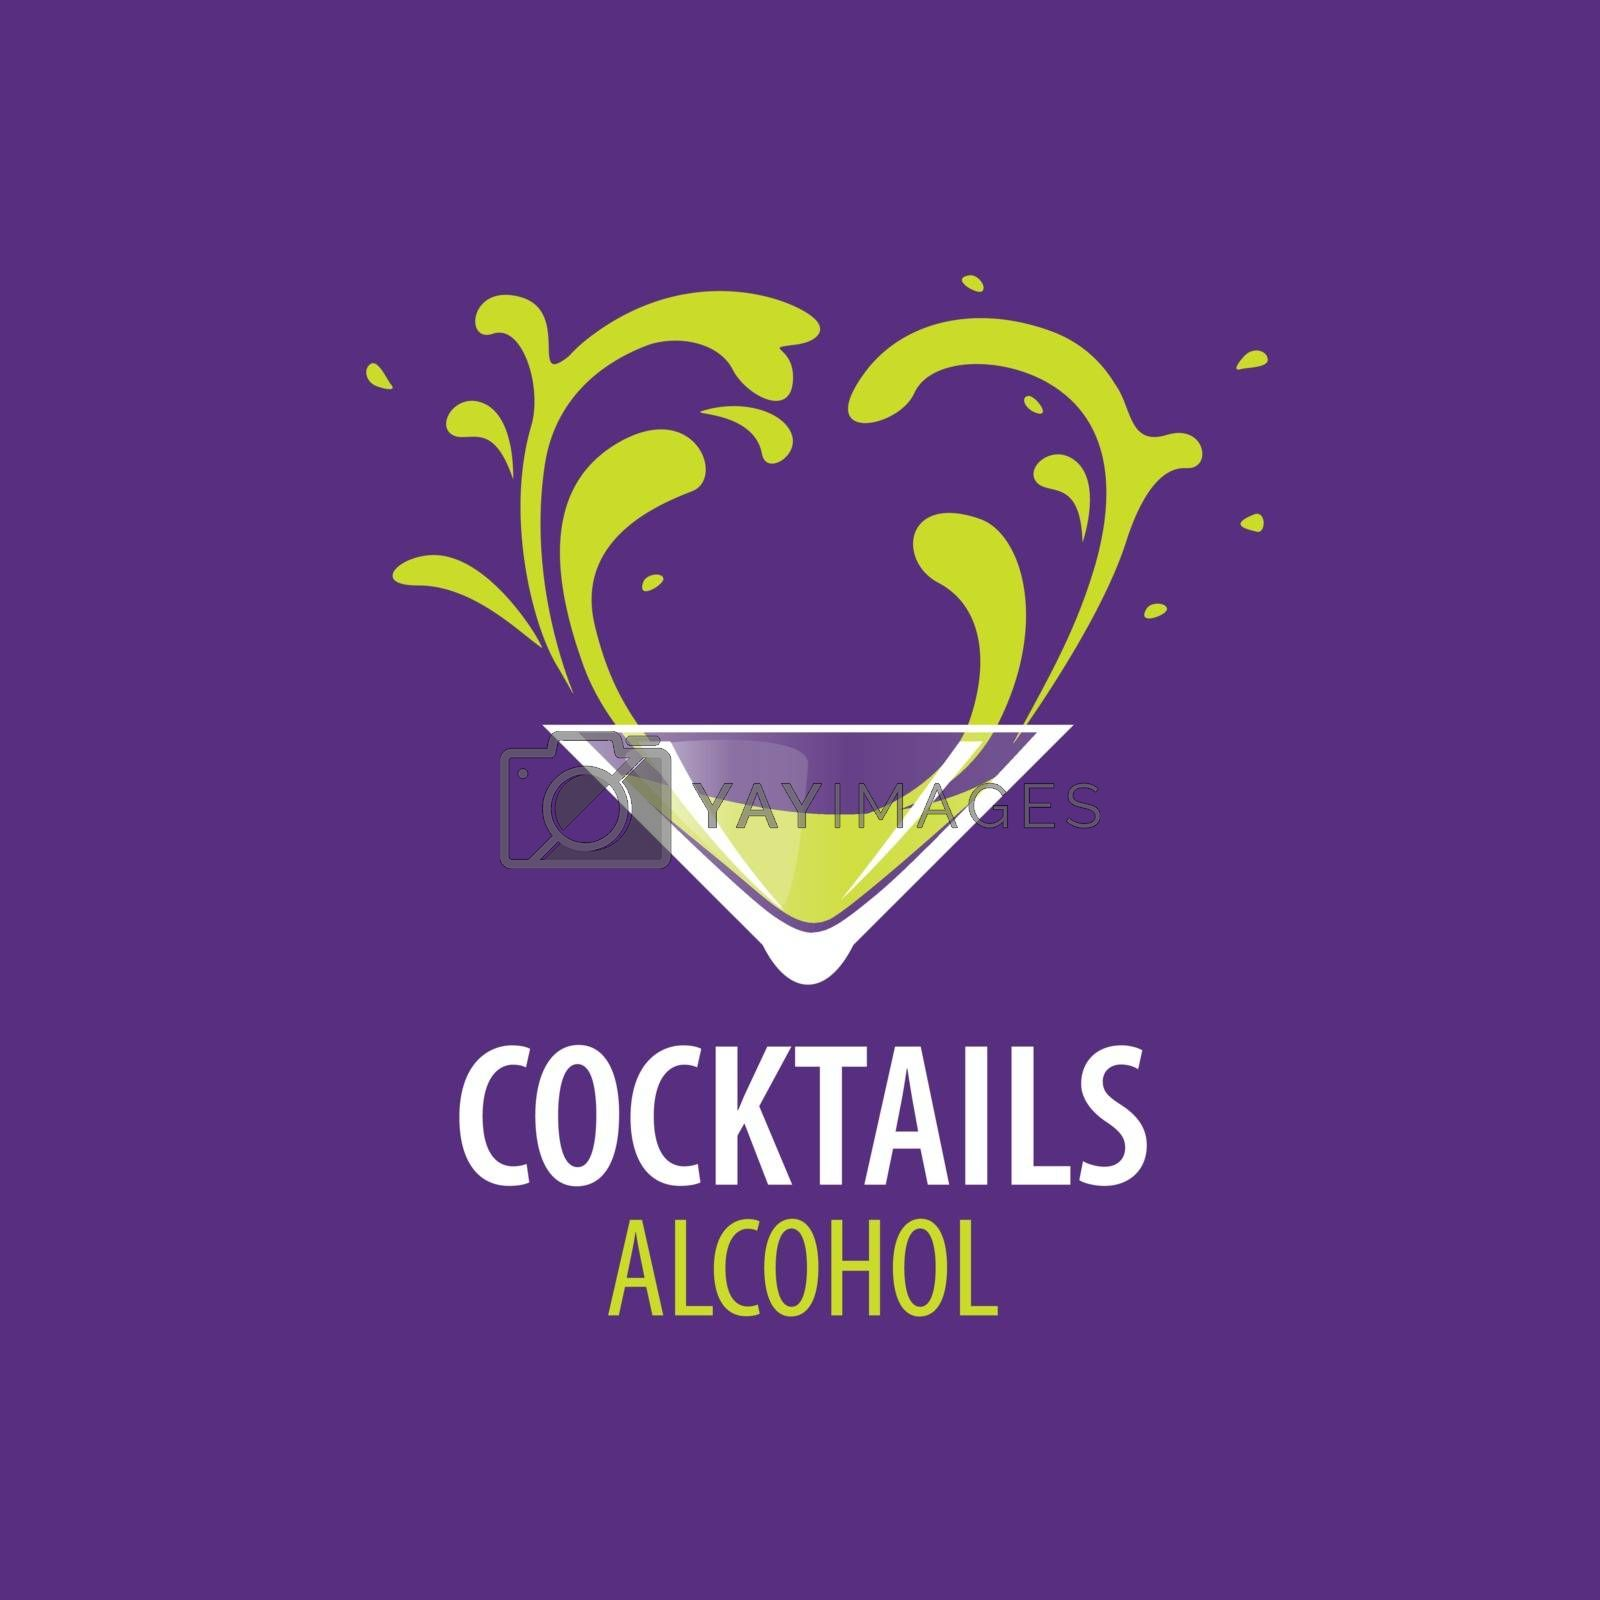 Royalty free image of alcoholic cocktails logo by butenkow